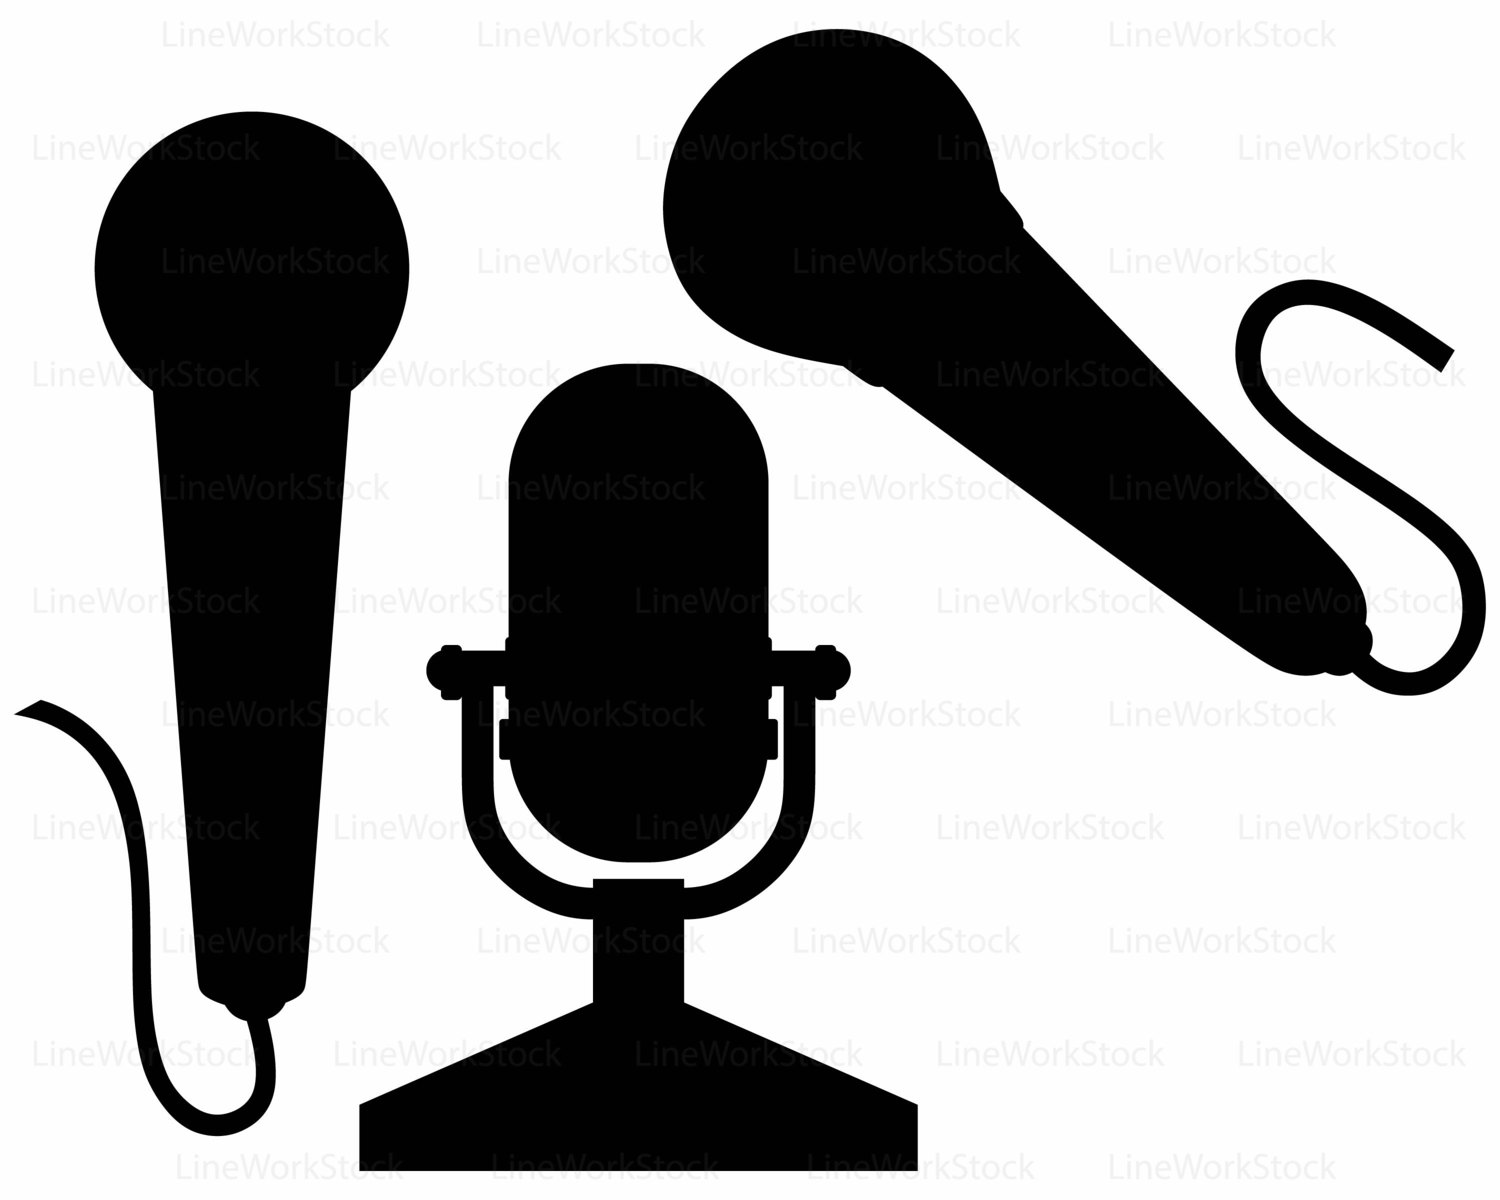 1500x1200 Microphone Svgmicrophone Clipartmicrophone Svgmicrophone